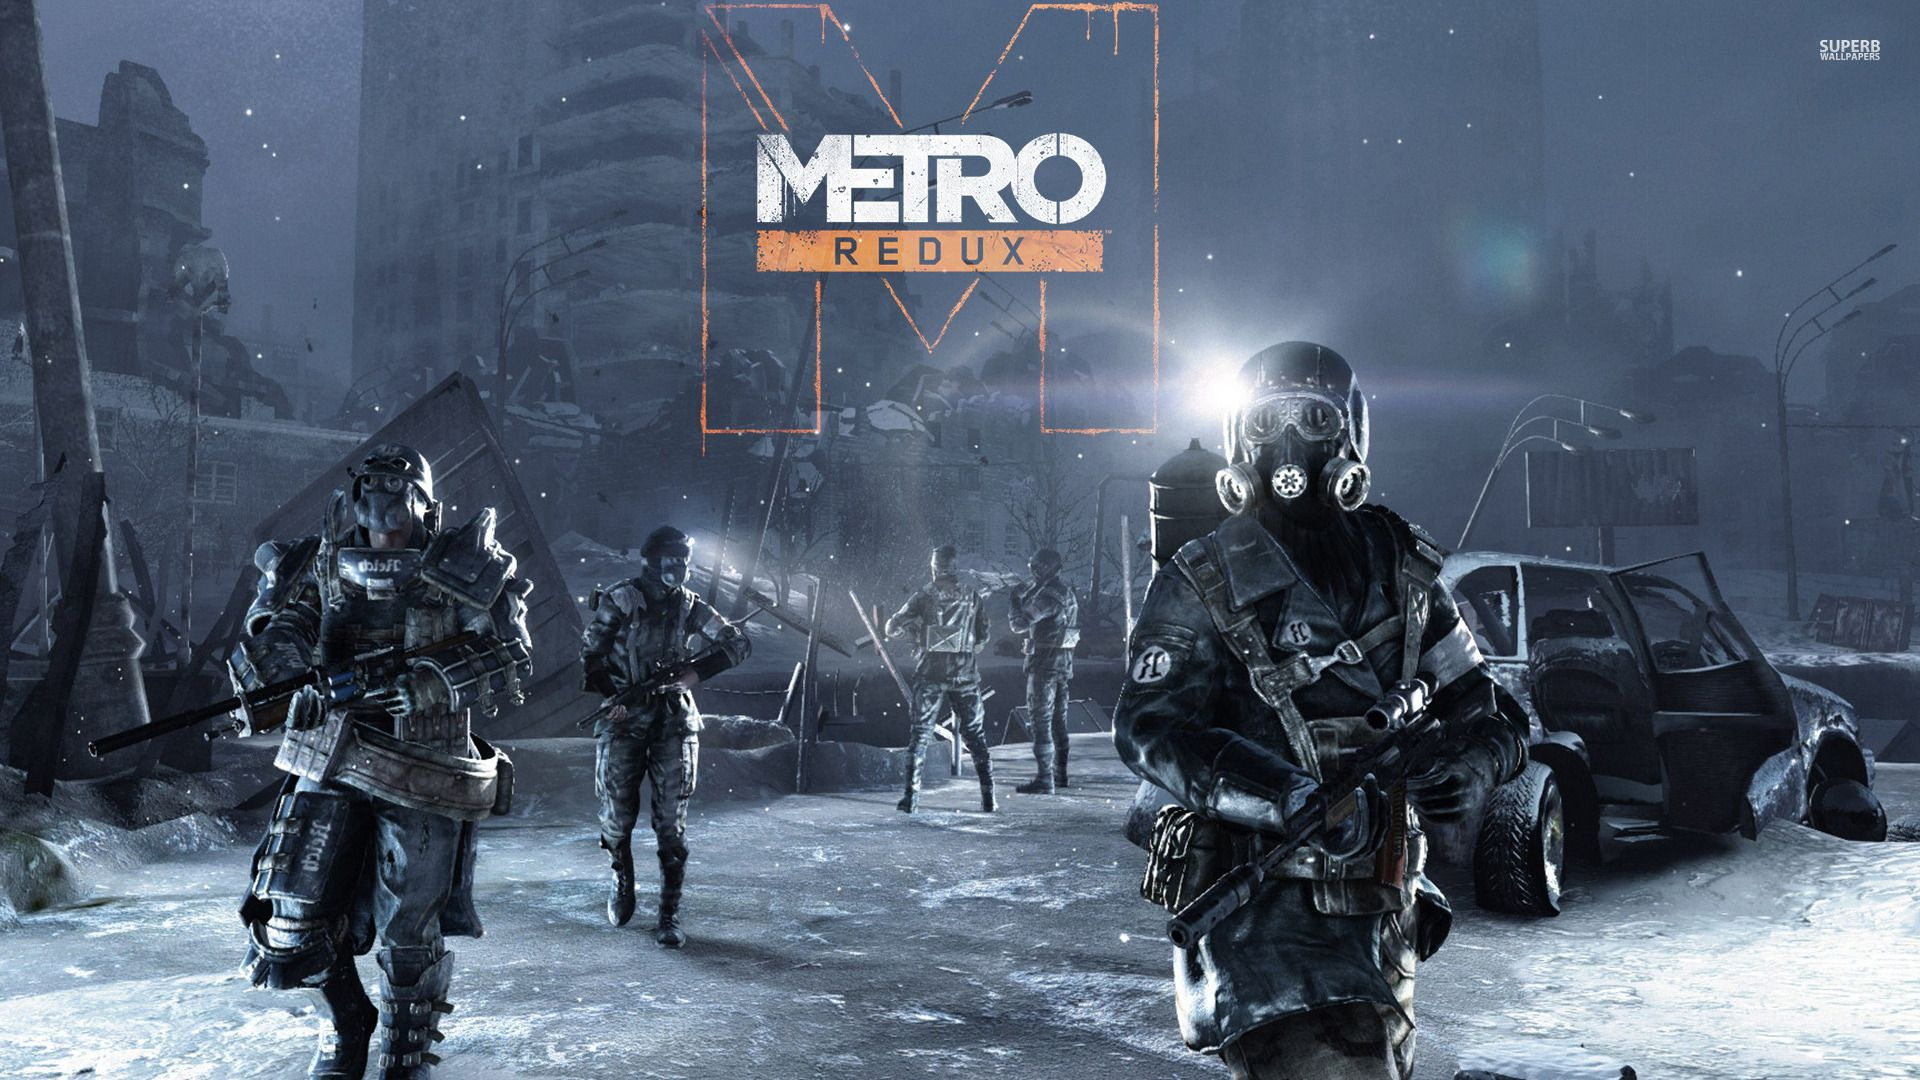 1920x1080 Metro 2033 Wallpapers, Full HDQ Metro 2033 Pictures and Wallpapers ...